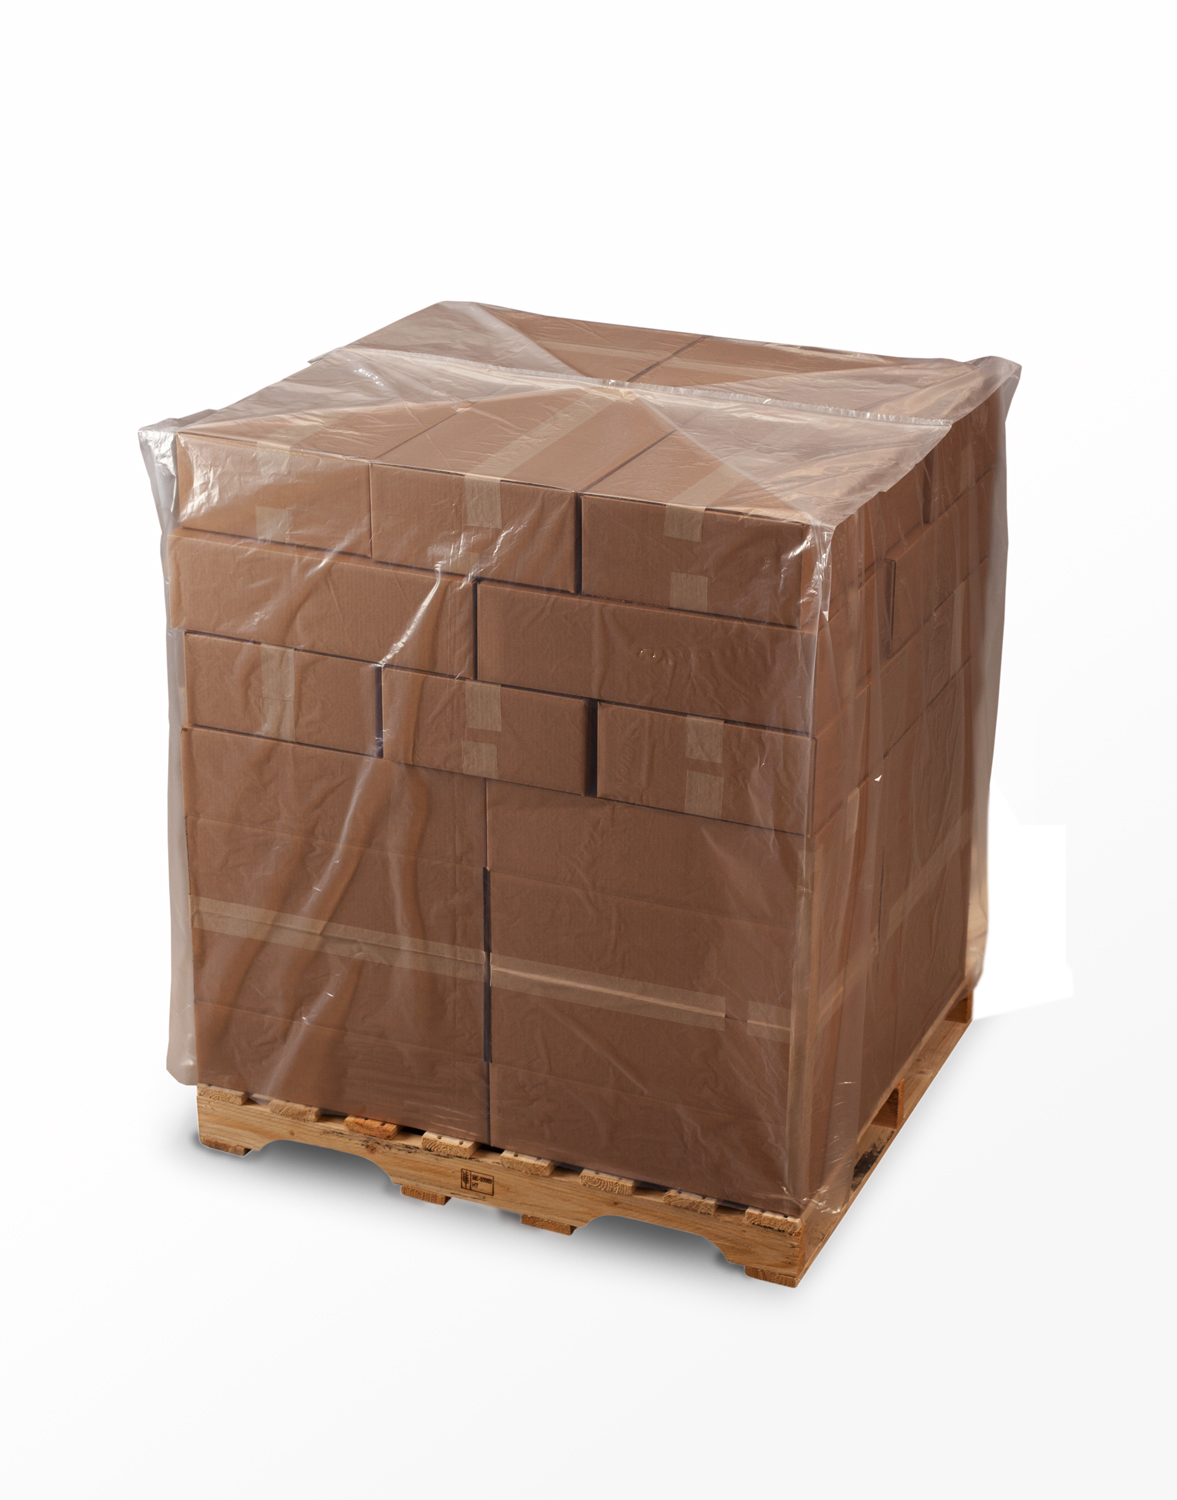 Clear Pallet Covers on Roll 54 x 44 x 72 x 4 Mil (44 in gusset) Roll:30